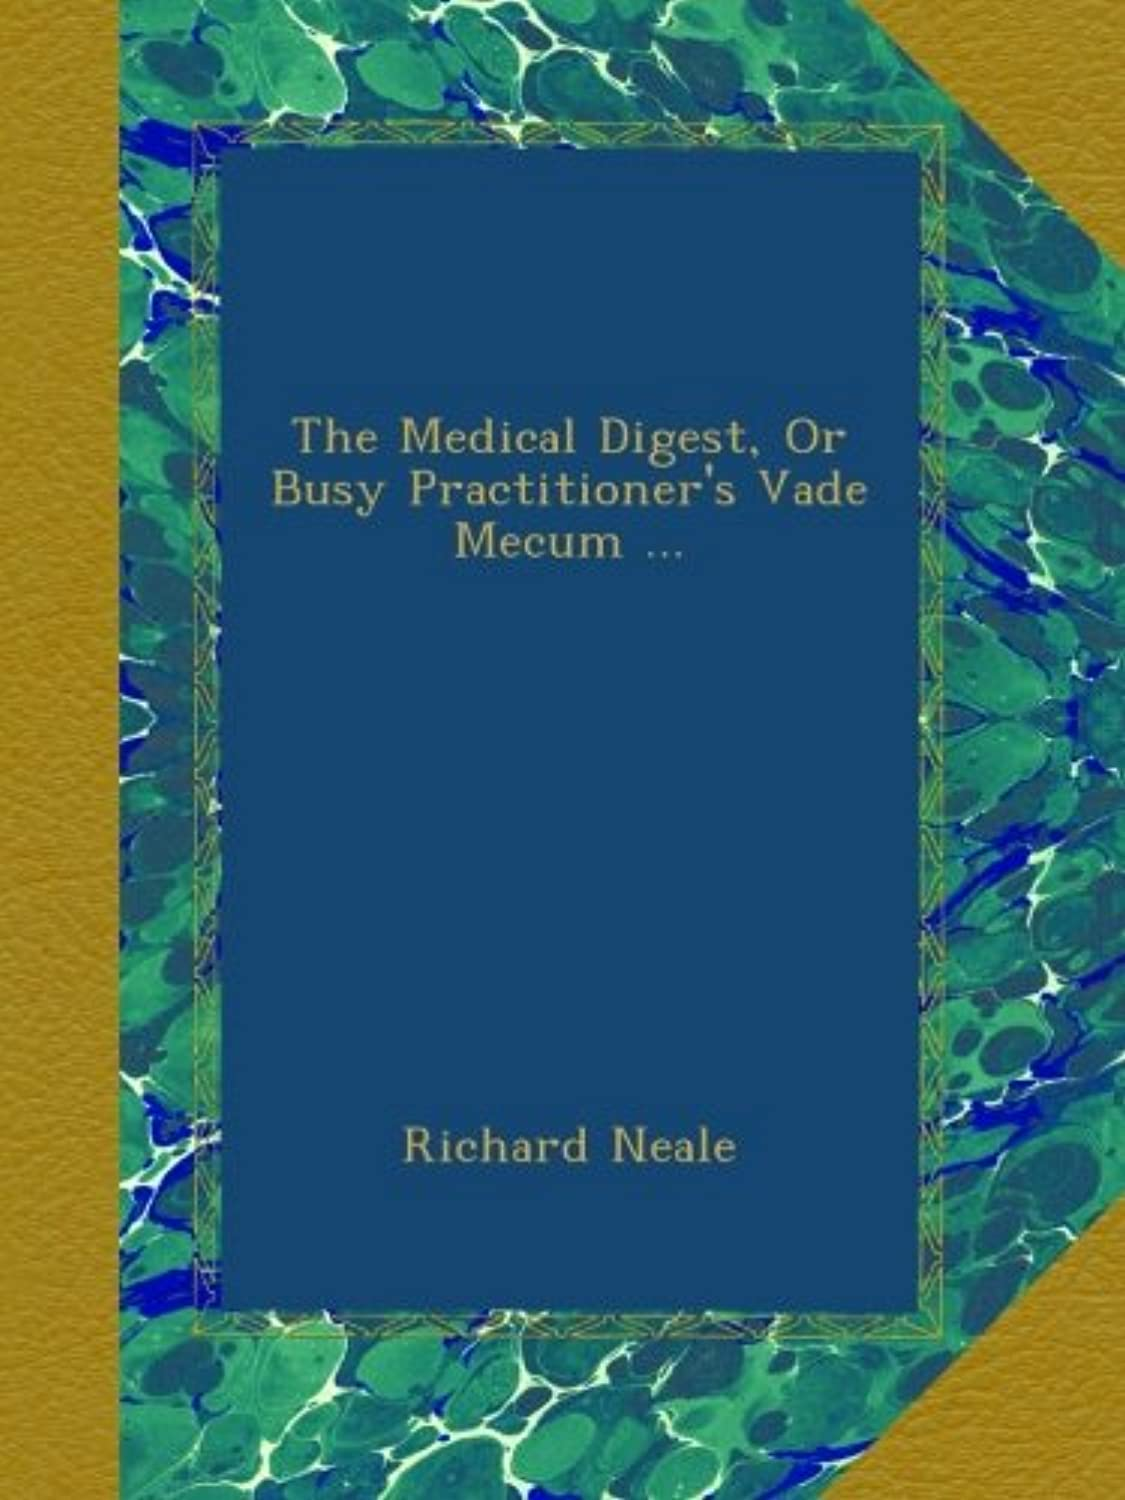 The Medical Digest, Or Busy Practitioner's Vade Mecum ...